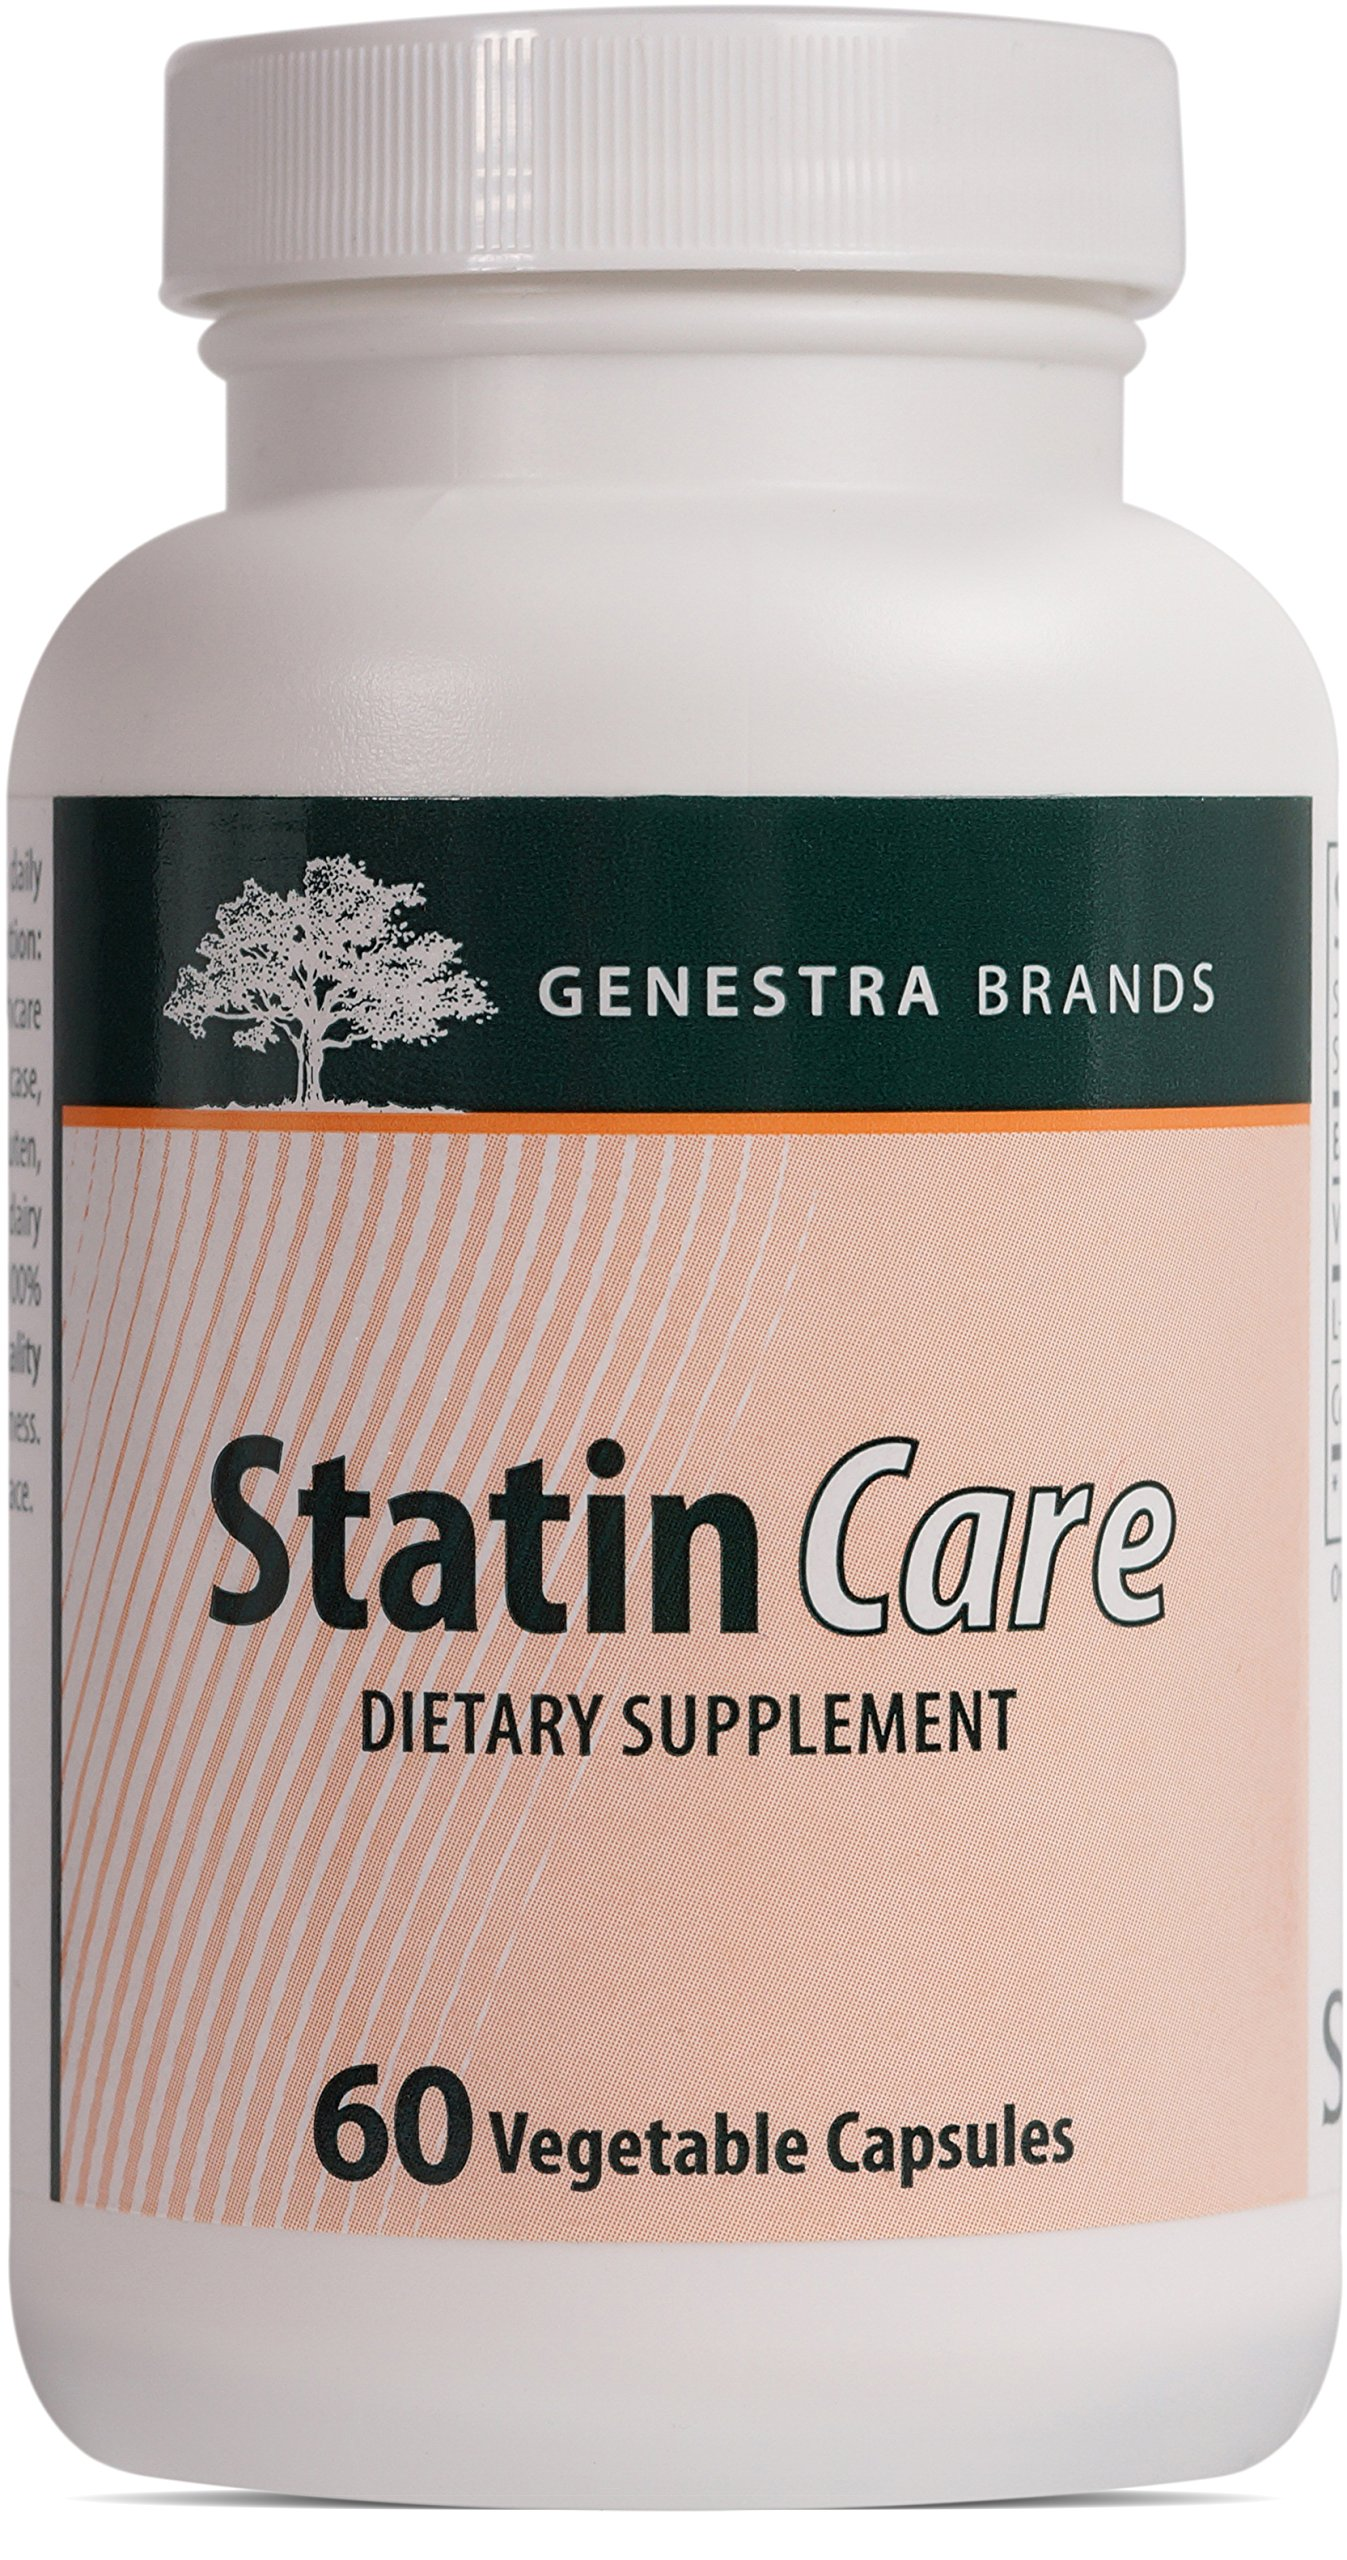 Genestra Brands - Statin Care - Coenzyme Q10, L-Carnitine and Vitamin D for Cardiovascular Health* - 60 Vegetable Capsules